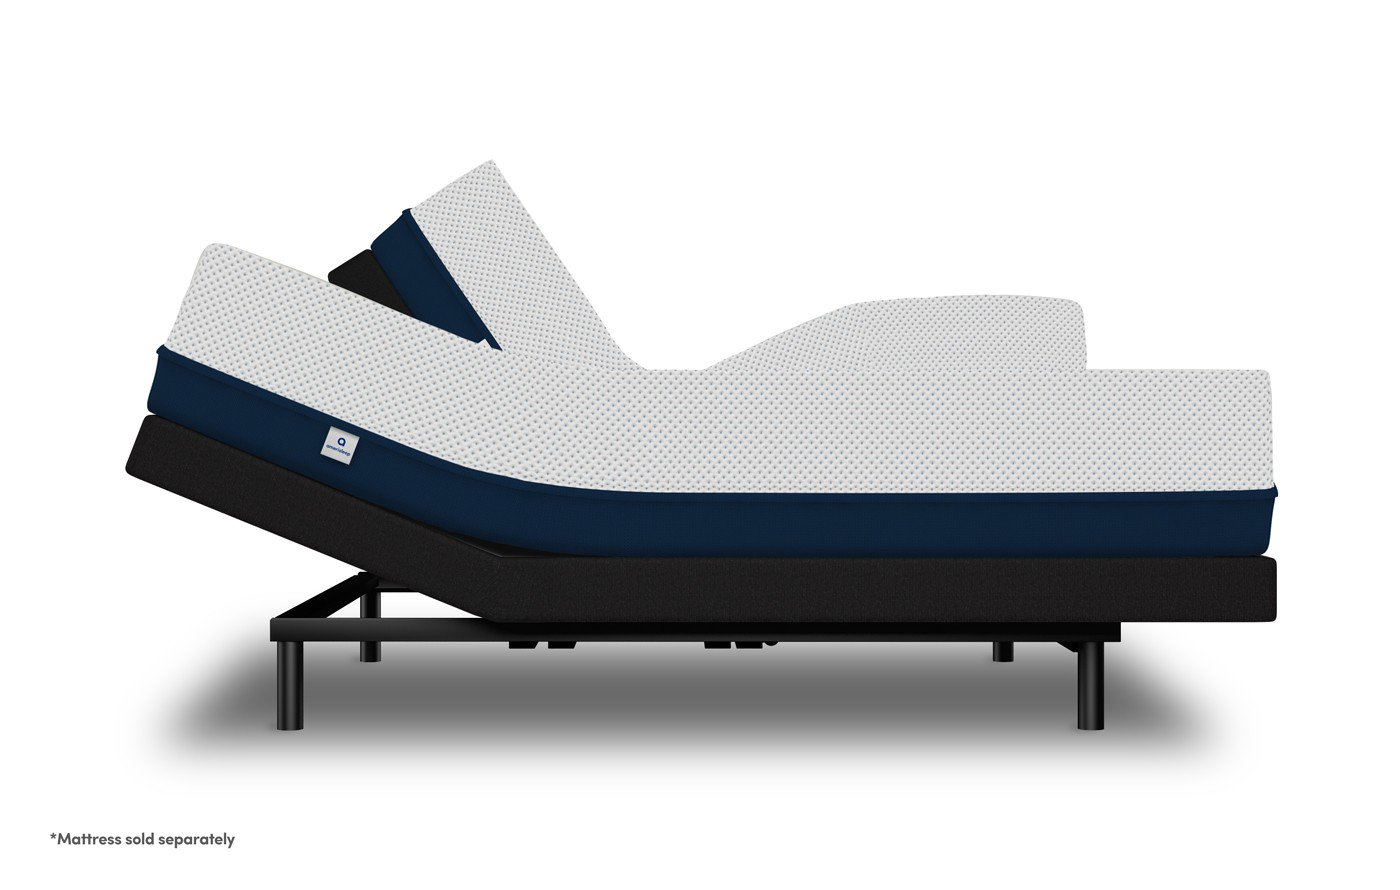 Amerisleep Adjustable Bed